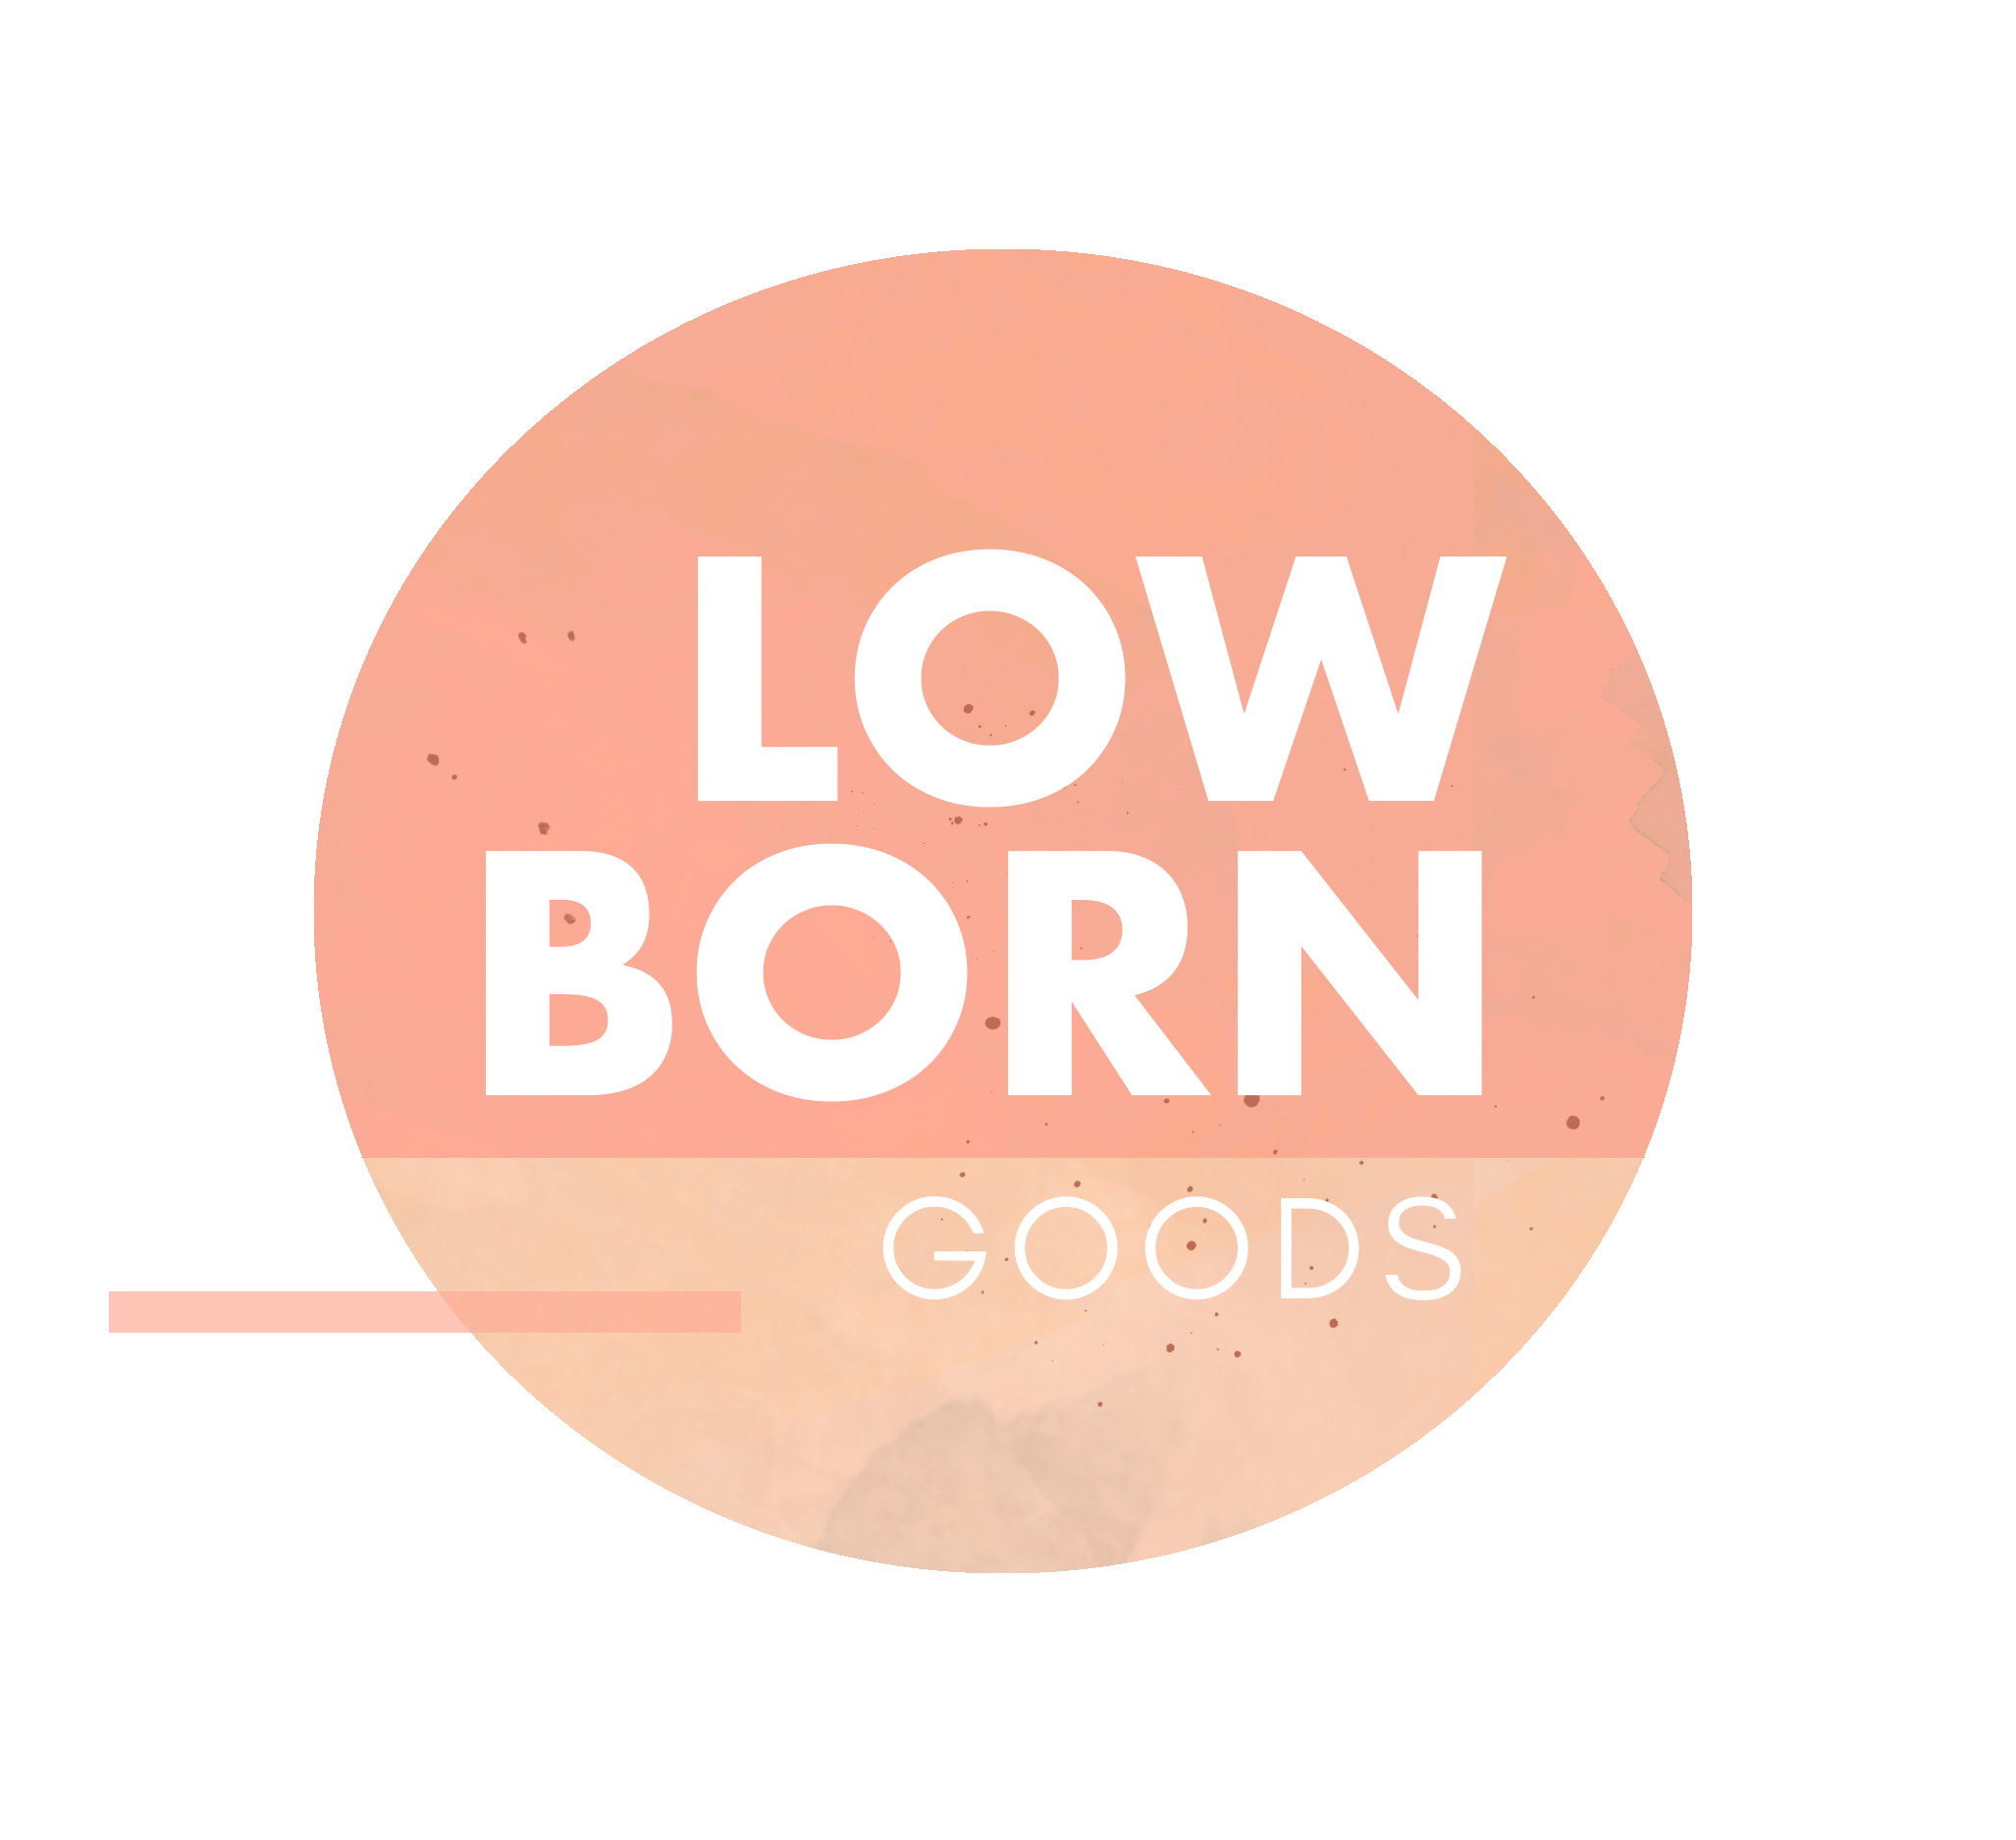 lowbornlogowithtext.png